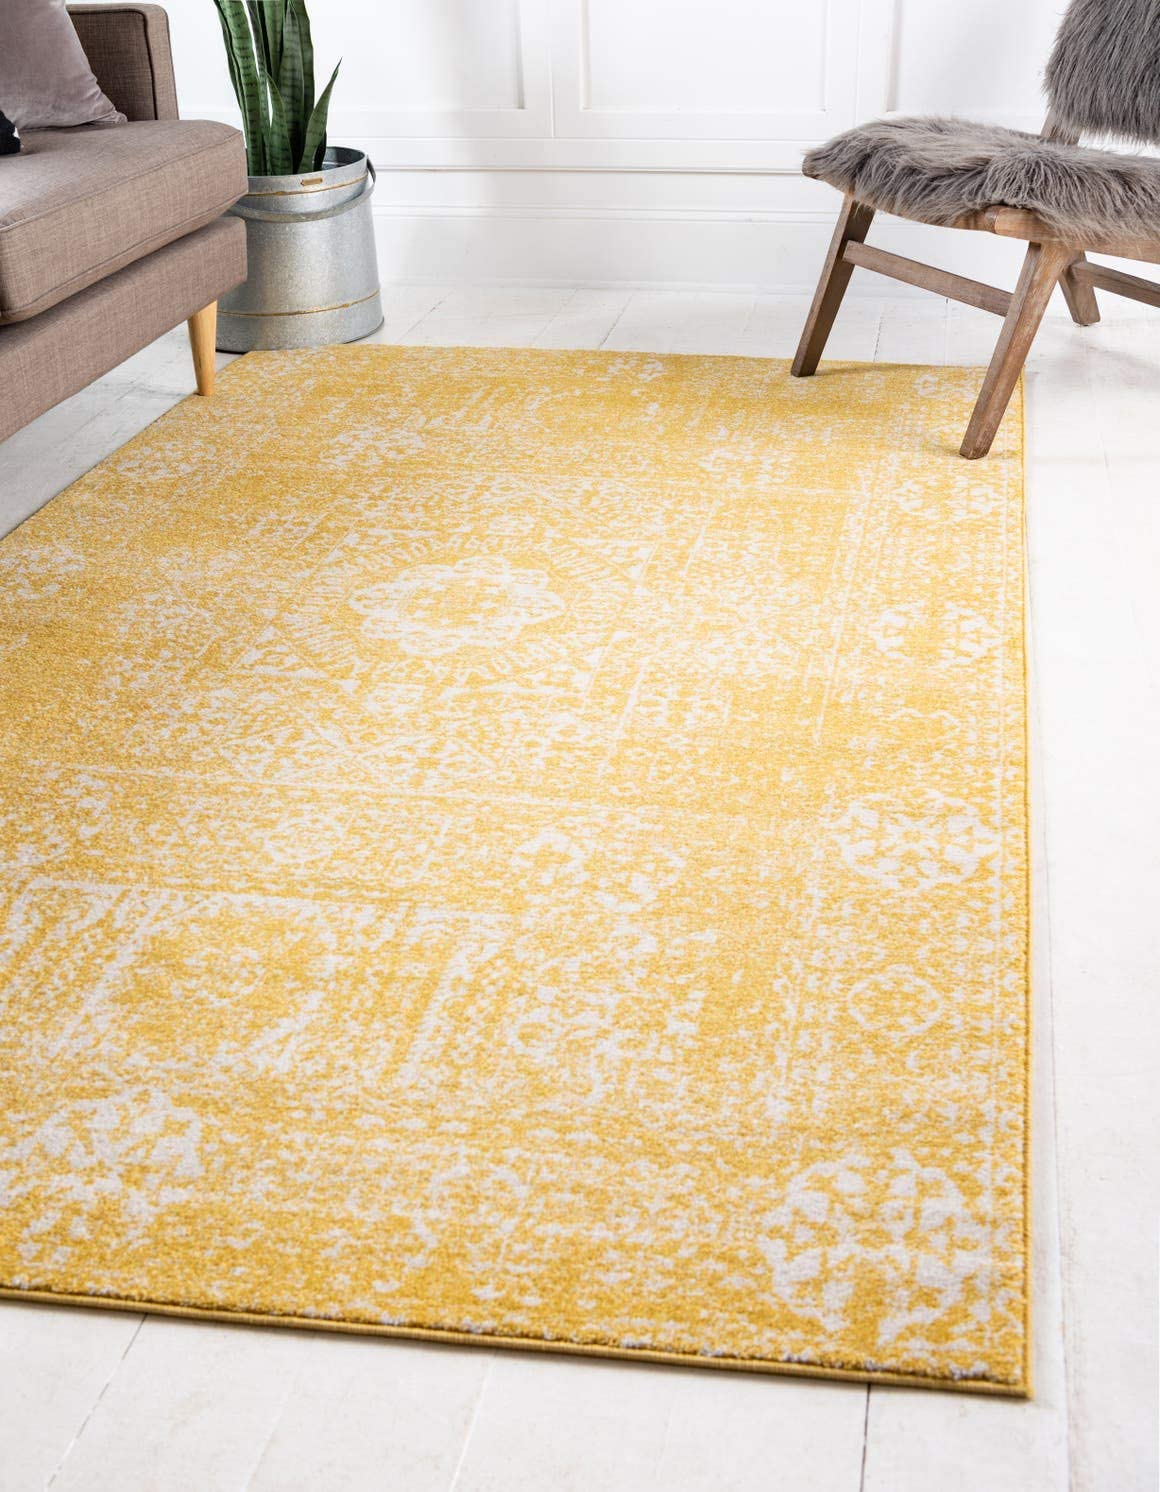 Unique Loom Tradition Collection Classic Southwestern Yellow Area Rug 5 0 x 8 0